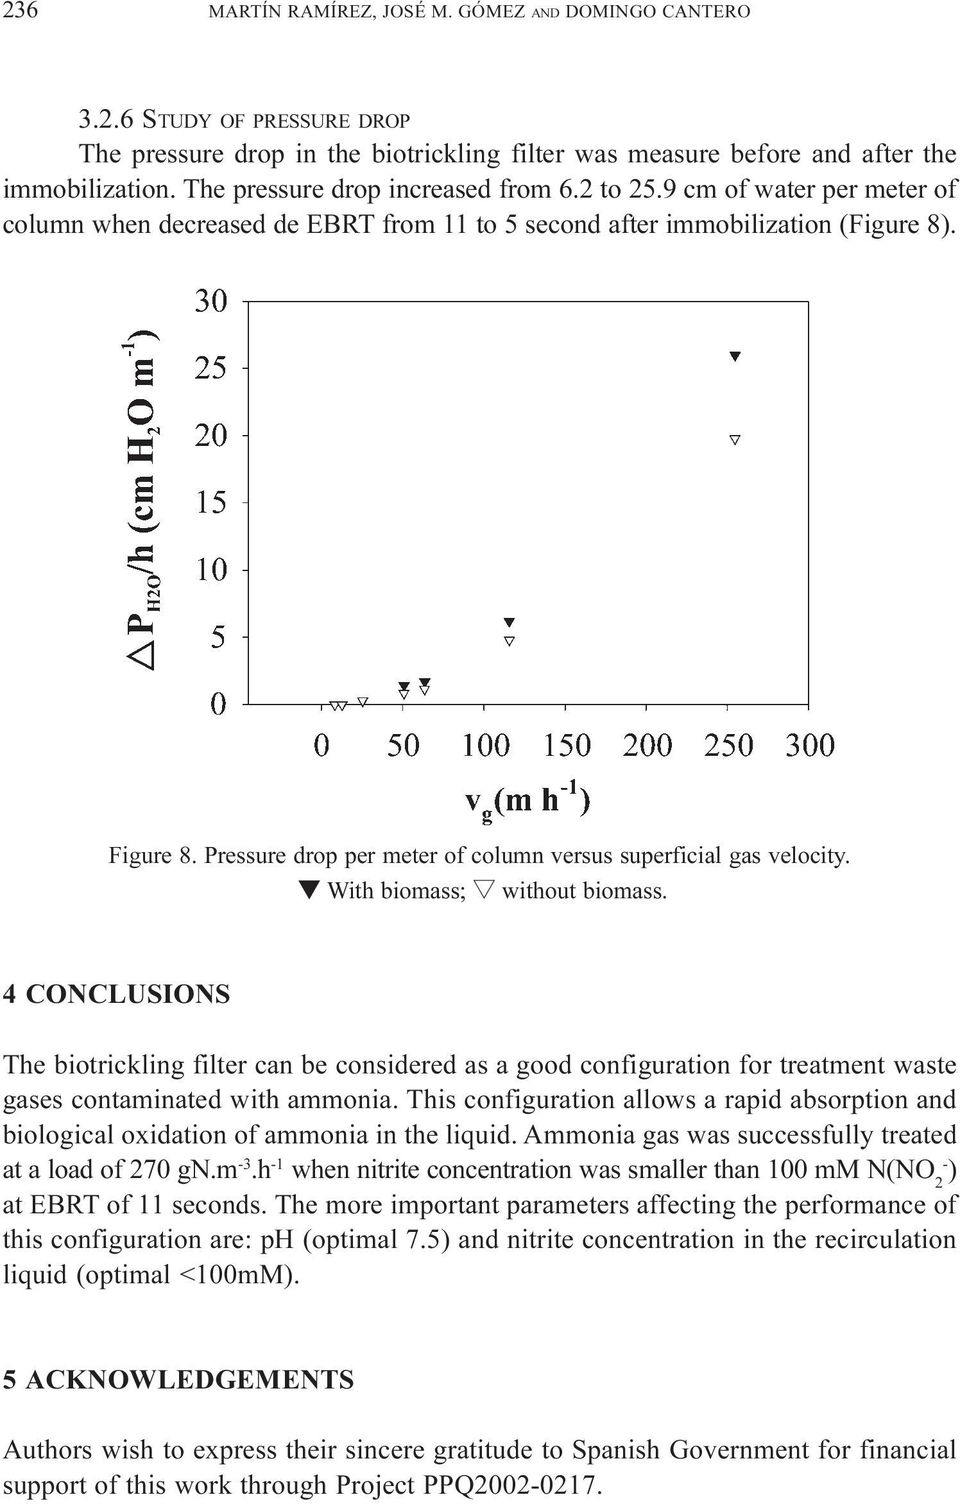 Pressure drop per meter of column versus superficial gas velocity. With biomass; without biomass.